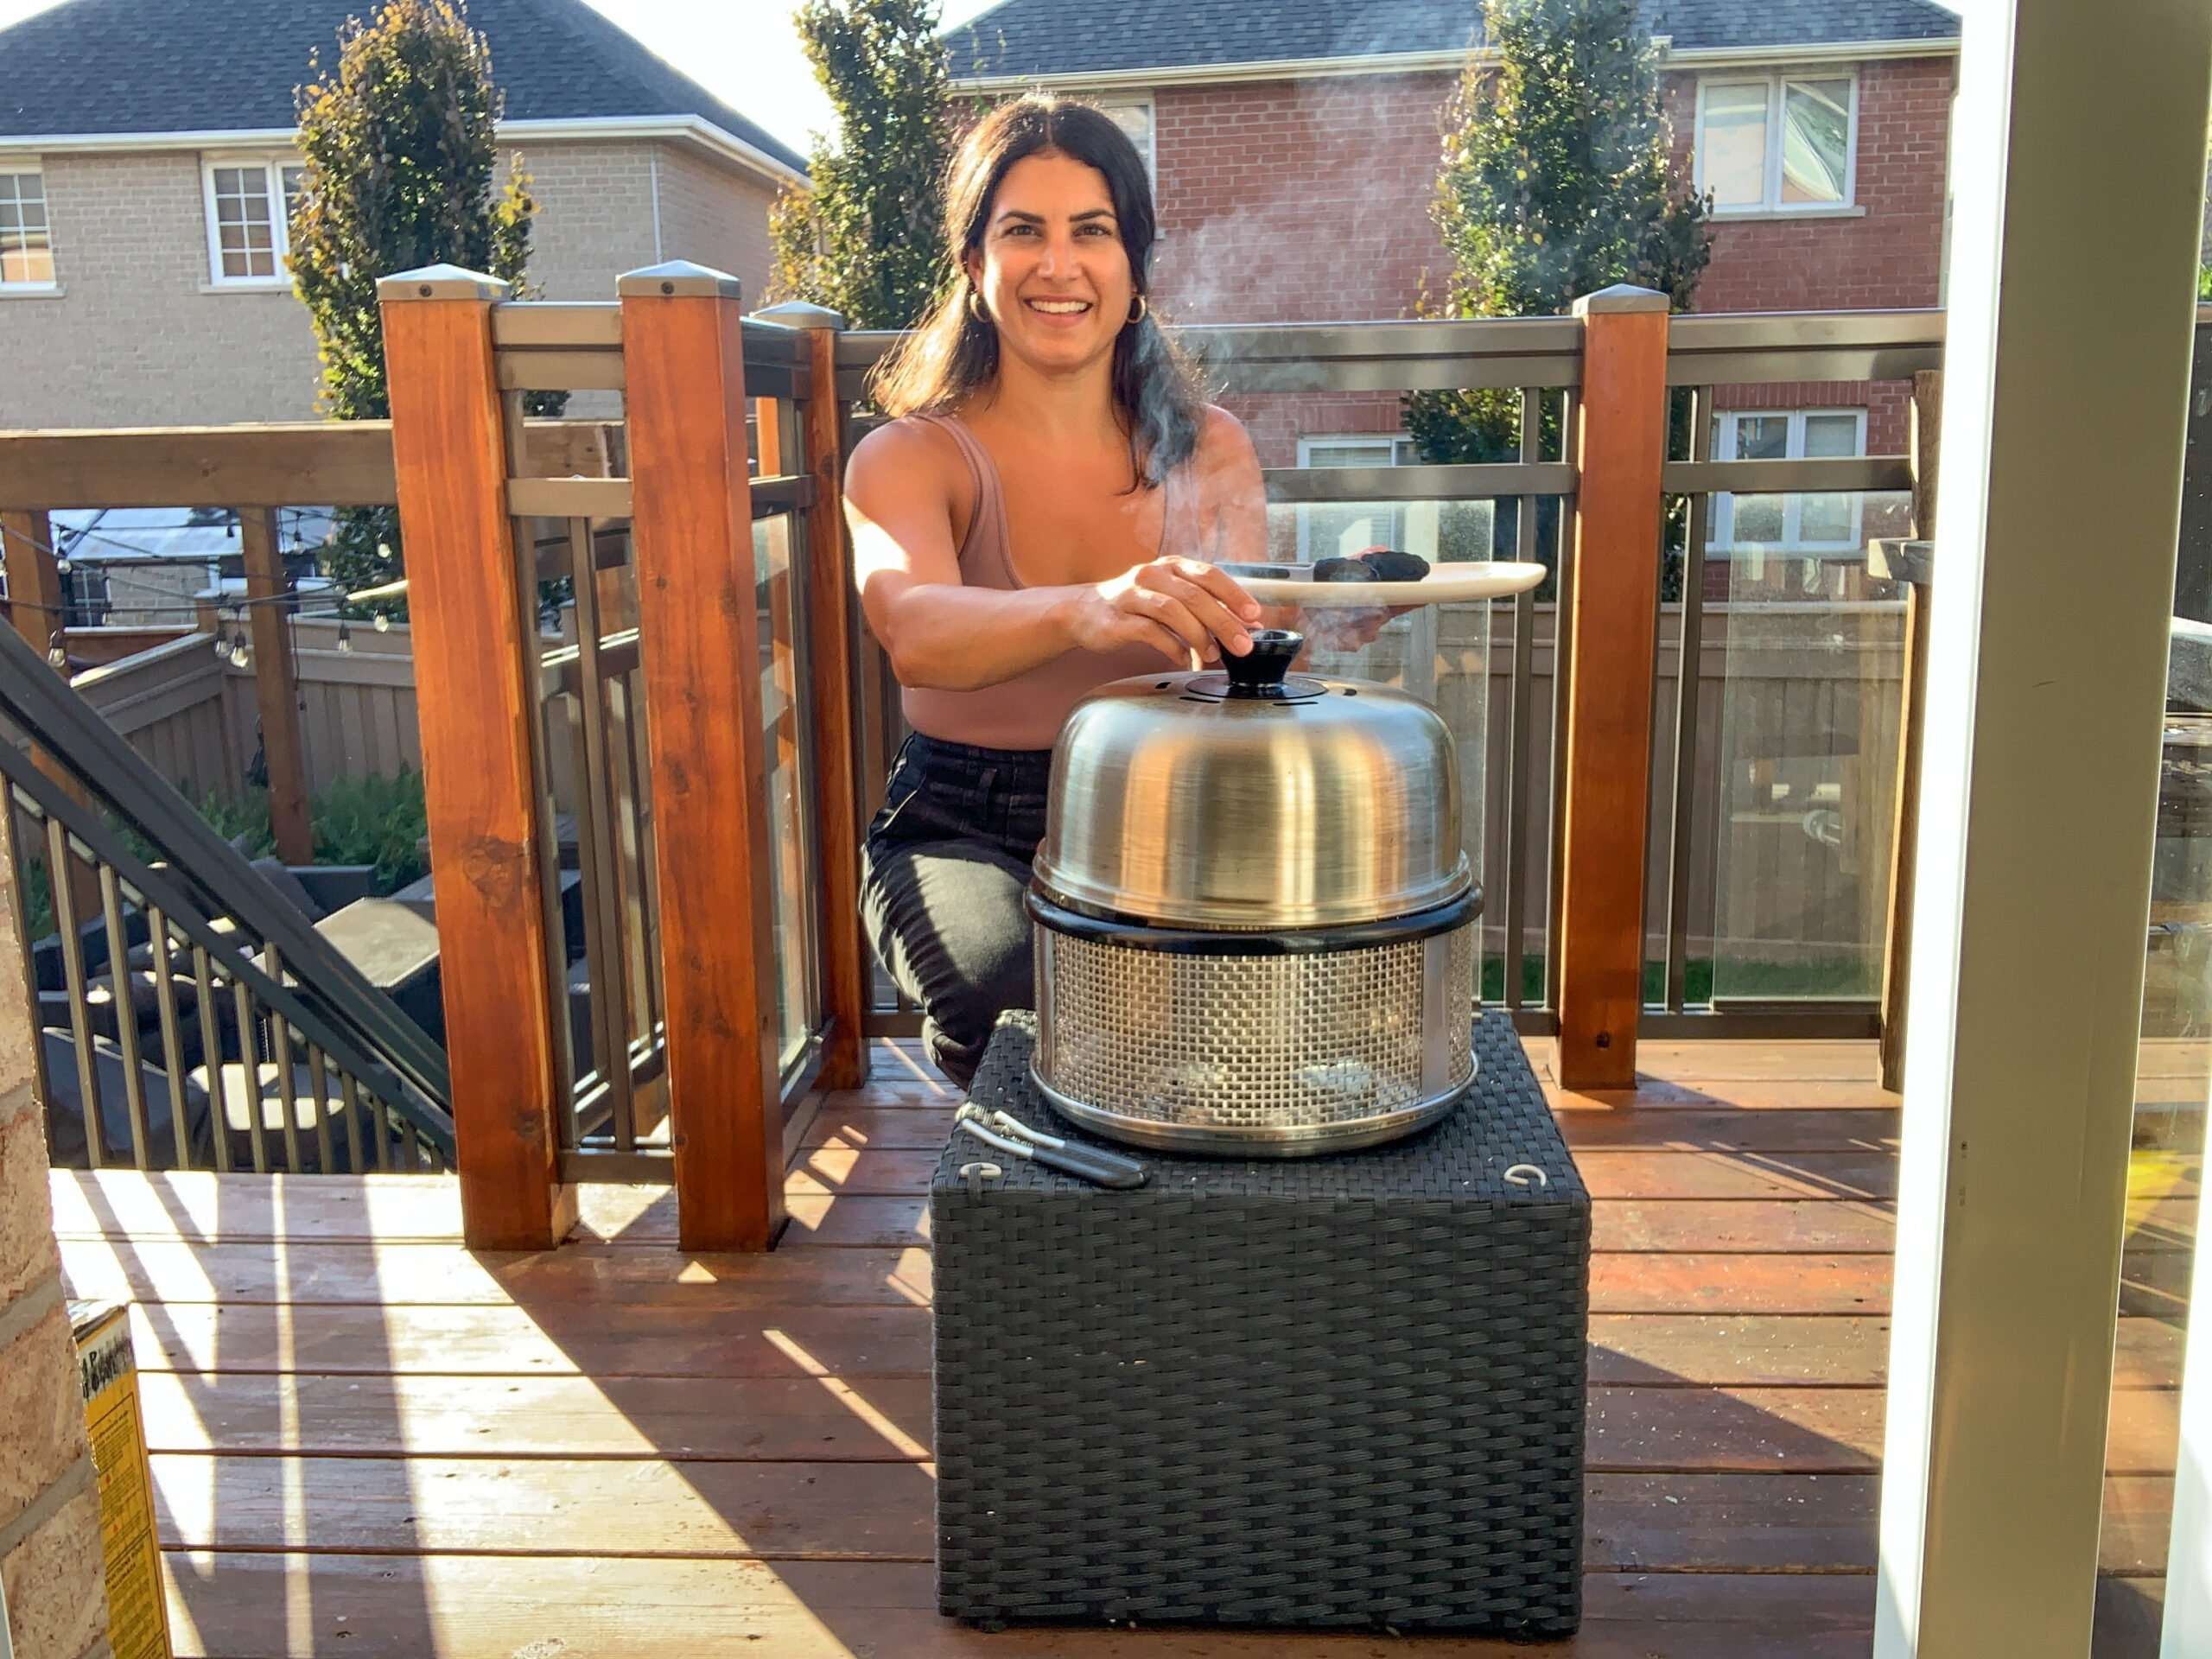 20210818 222711760 iOS scaled Easy Charcoal Grill Ideas & Recipes to Make Your Summer Awesome!